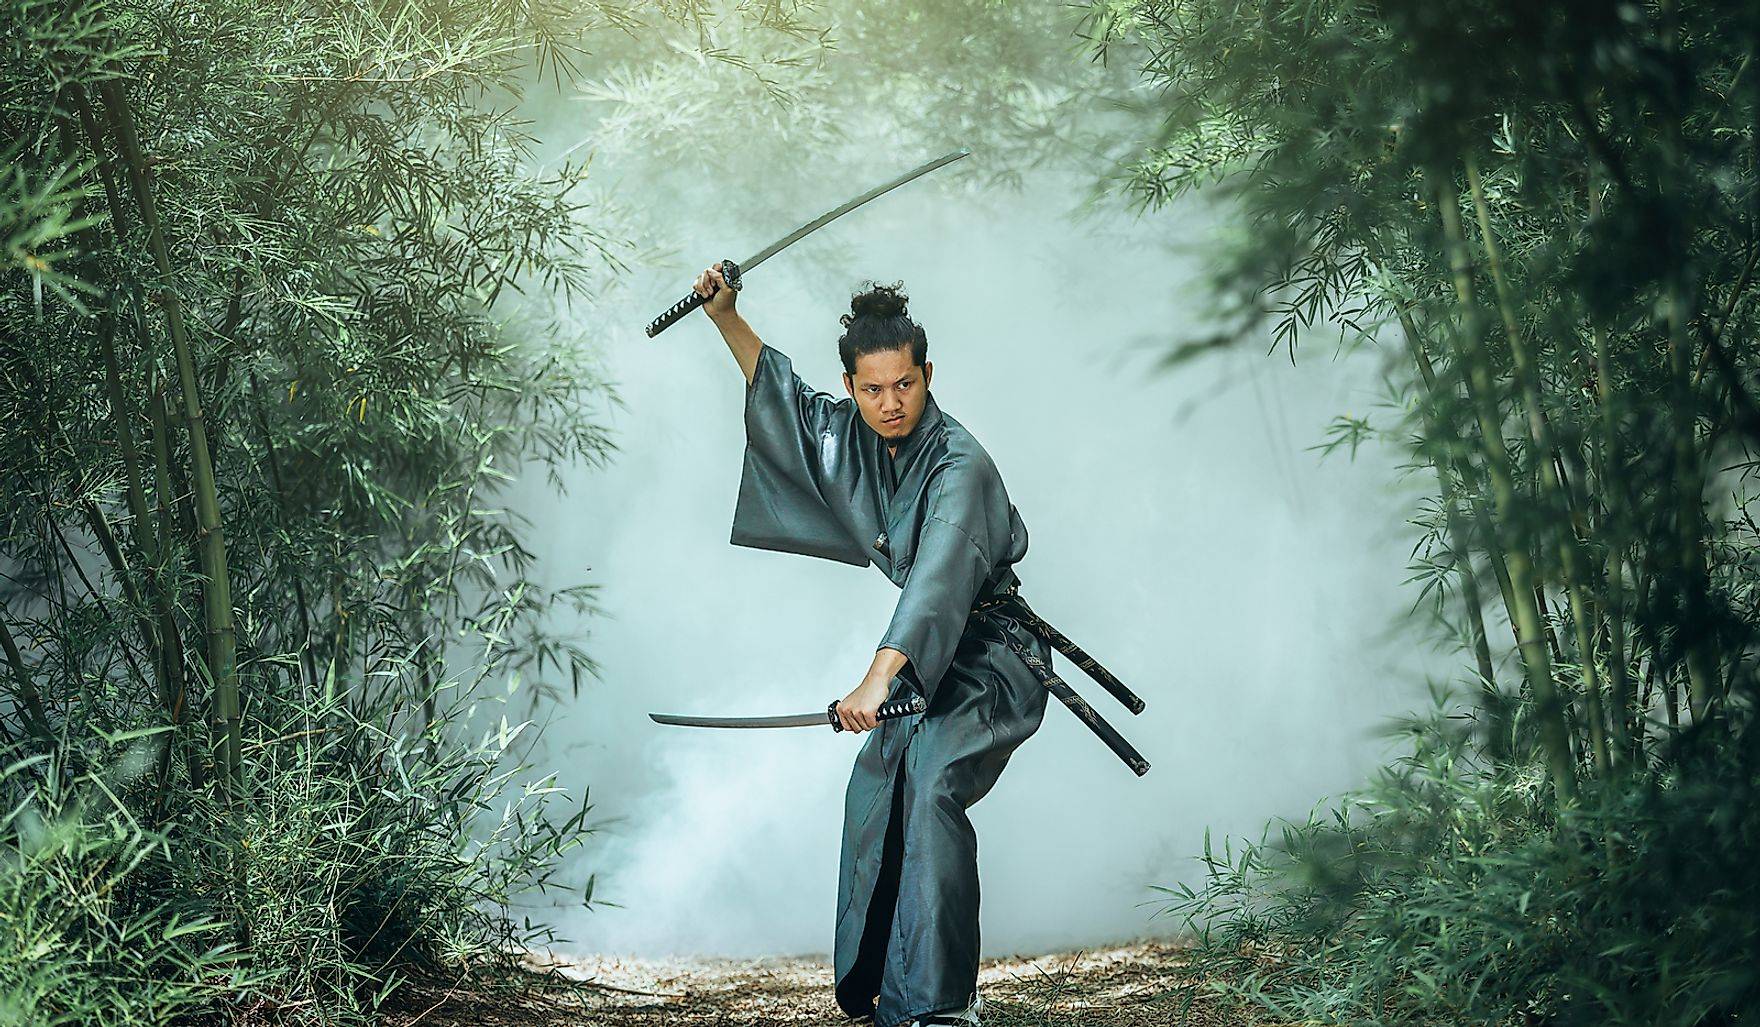 Mushin is a Japanese form of meditation that is crucial part of some Japanese martial art forms.